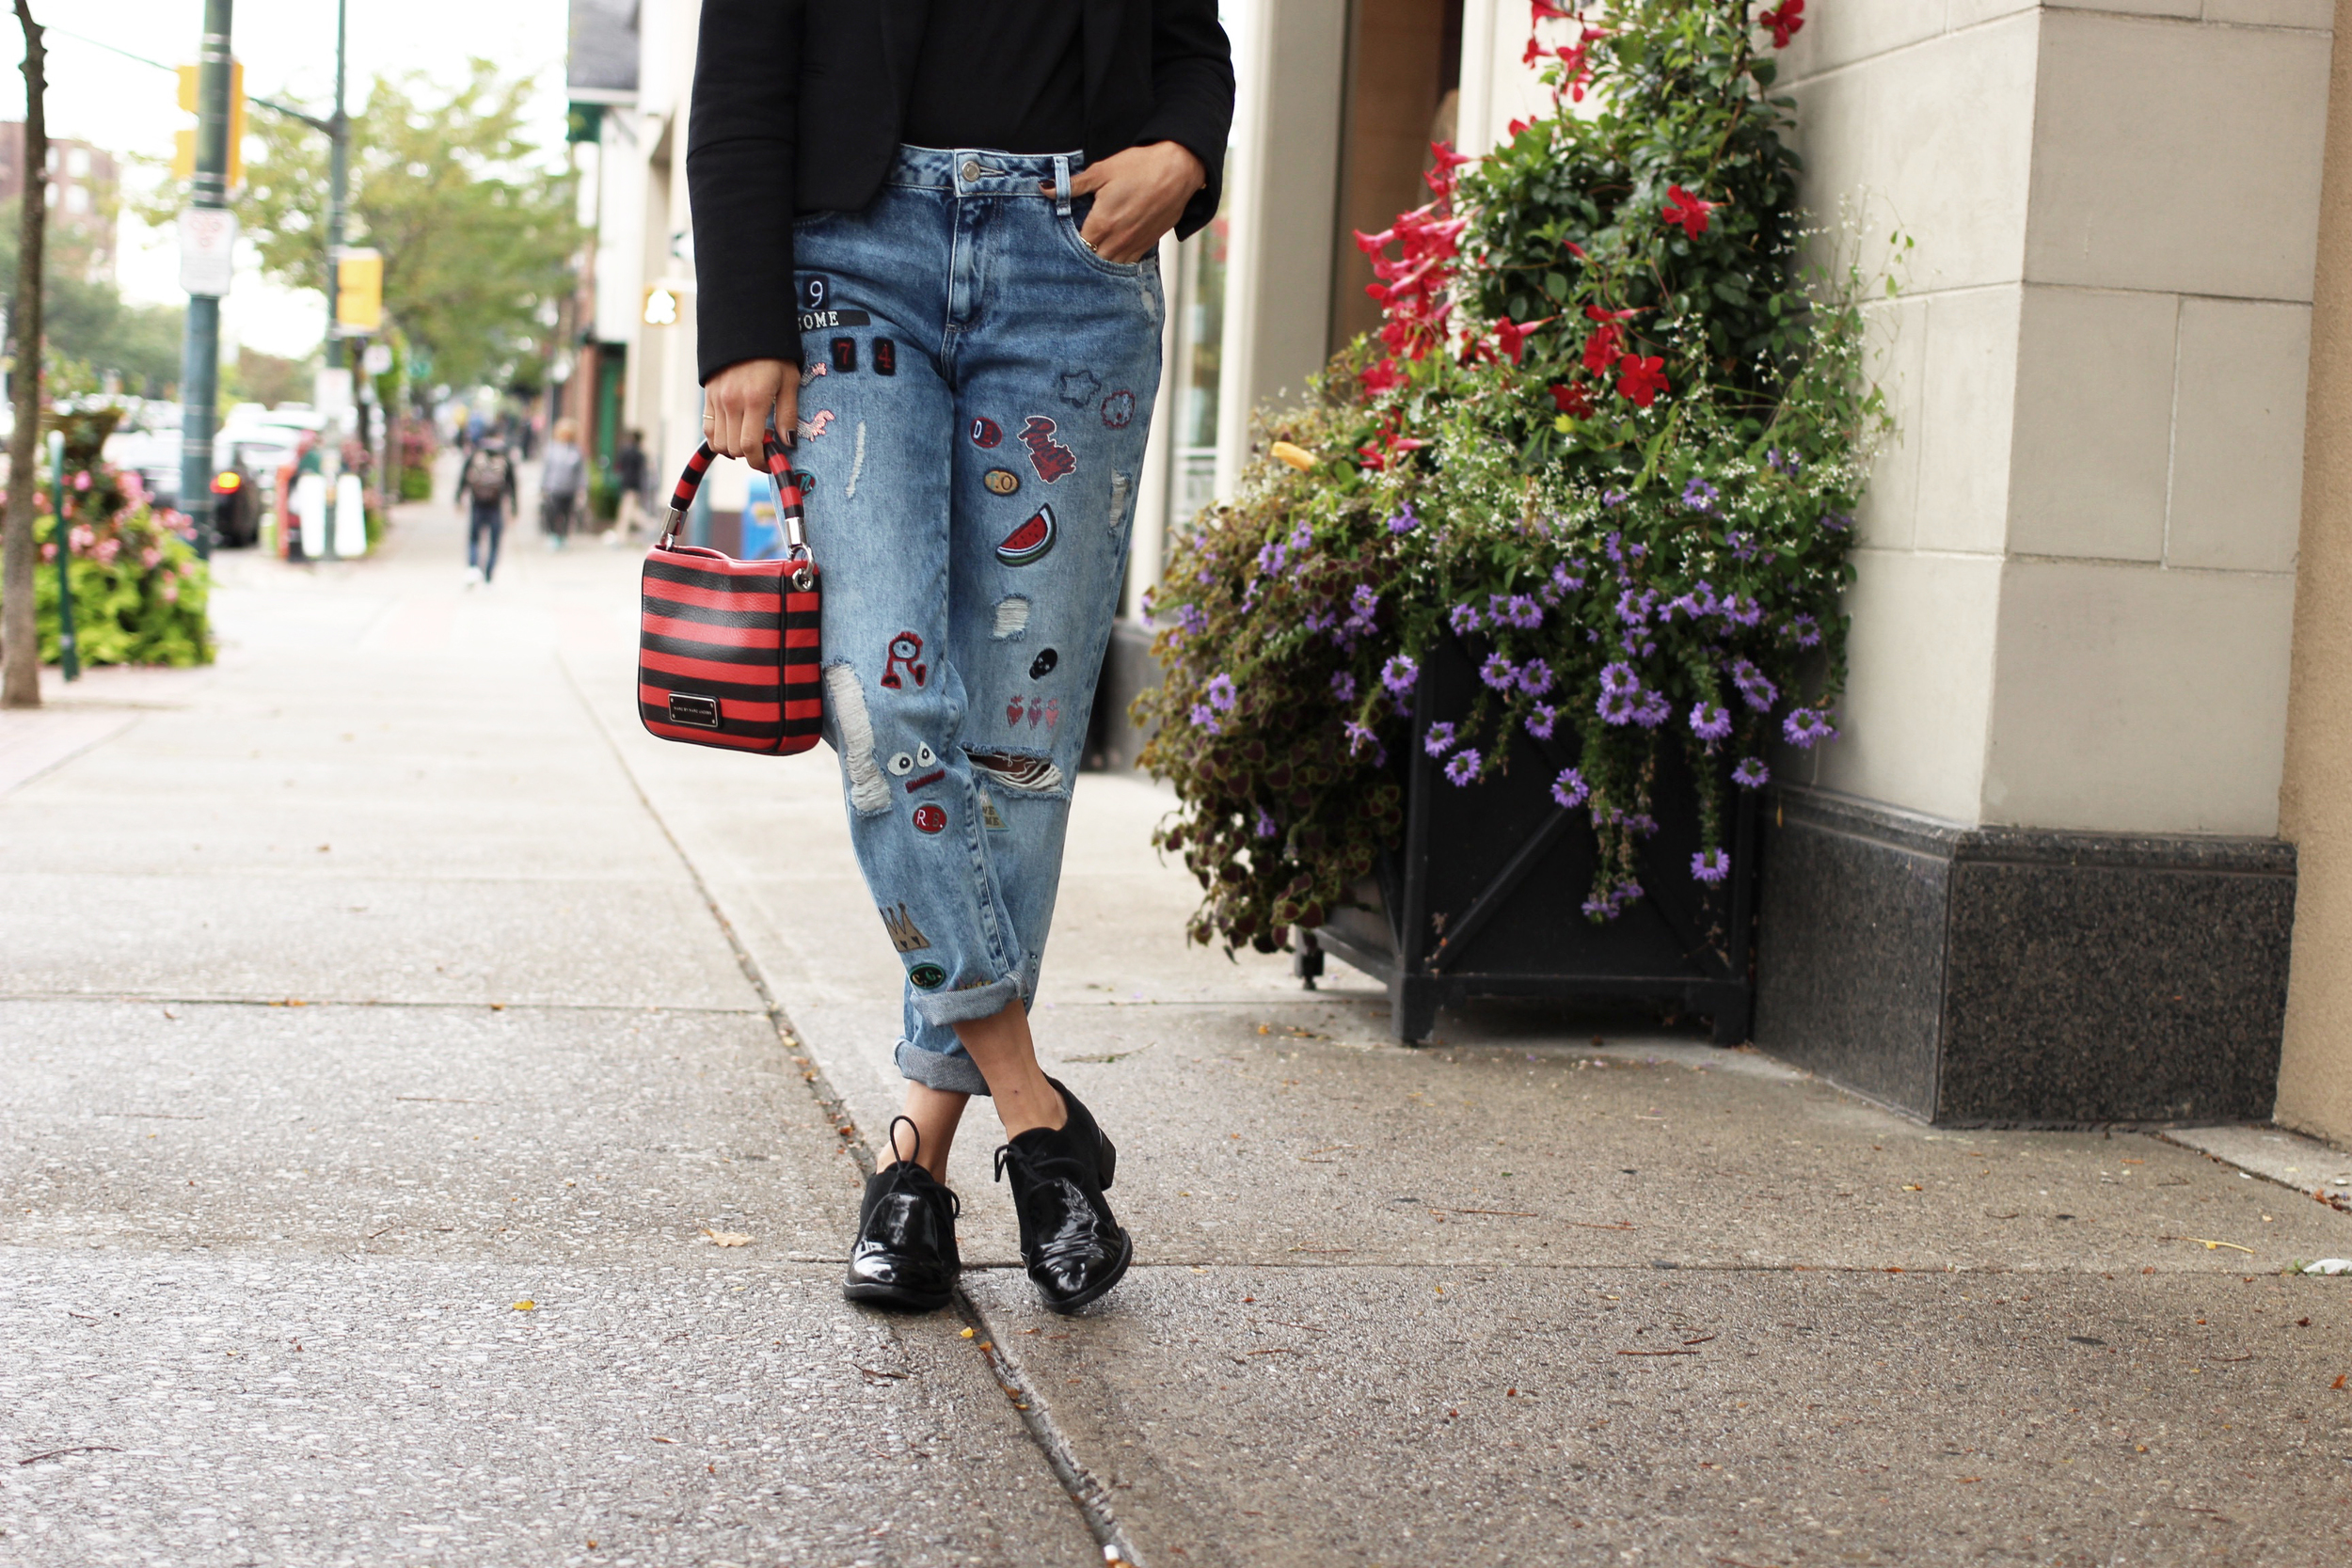 WoahStyle.com_Zara patchwork jeans_black army band blazer_jacket_red and black striped Marc By Marc Jacobs bag_MBMJ_Alexander Wang oxford shoes_TOMS purple metallic glasses_StreetStyle_Luxe_OOTD_0186.jpg